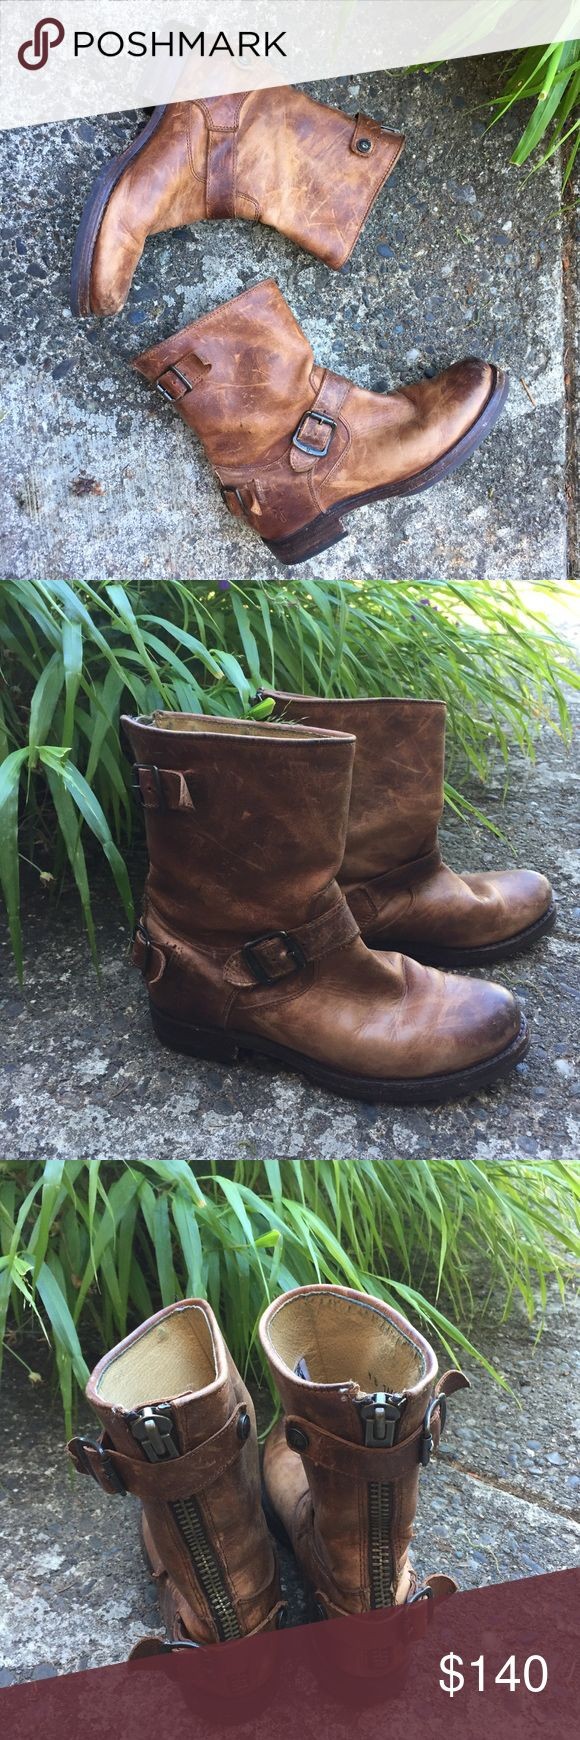 """Fyre Short Veronica's Distressed Brown Leather Great used condition with tons of life left but not the high price tag if new.   Some scuffing on the toe and light wear on the back of the heel.  1 1/8 heel and shaft 9"""" from floor to top fyre Shoes Ankle Boots & Booties"""